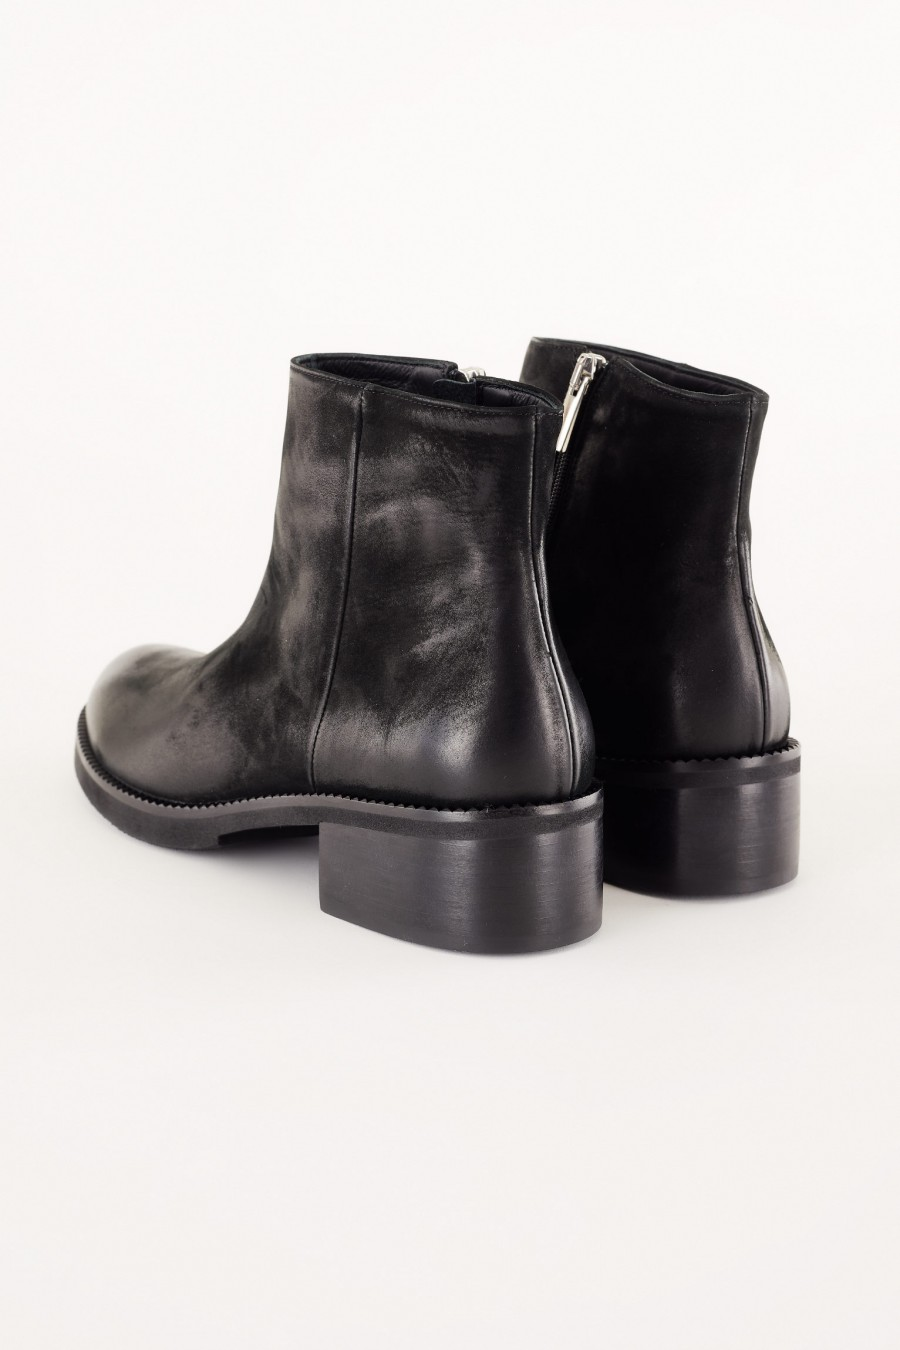 easy-to-style ankle boots